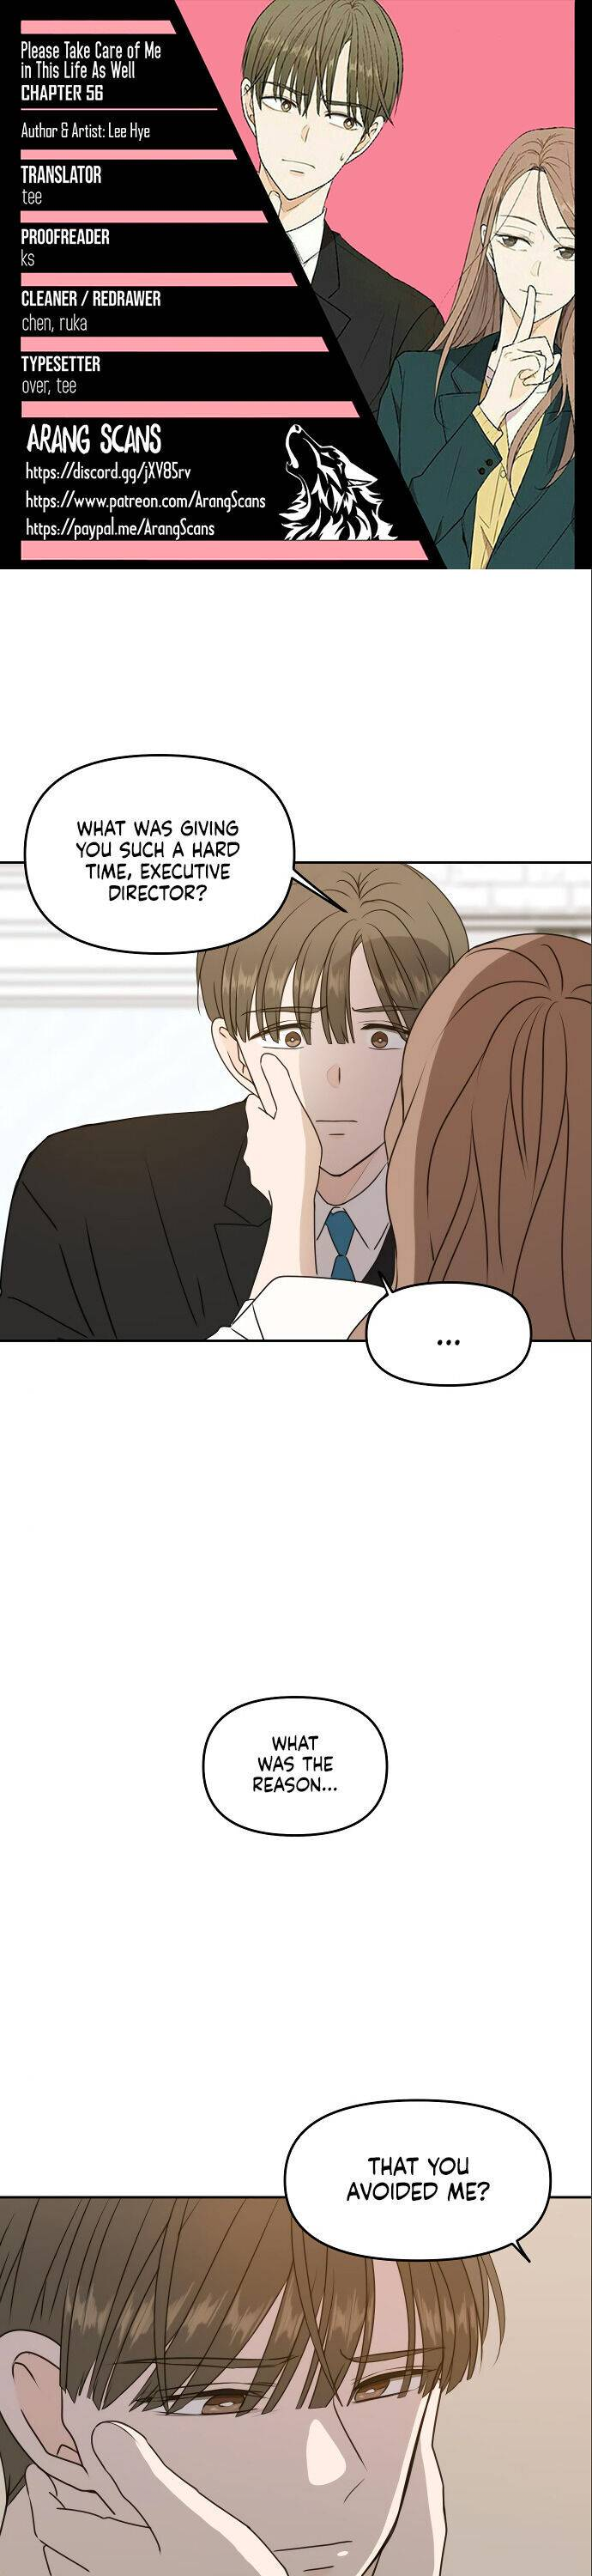 Please Take Care Of Me In This Life As Well - chapter 56 - #1